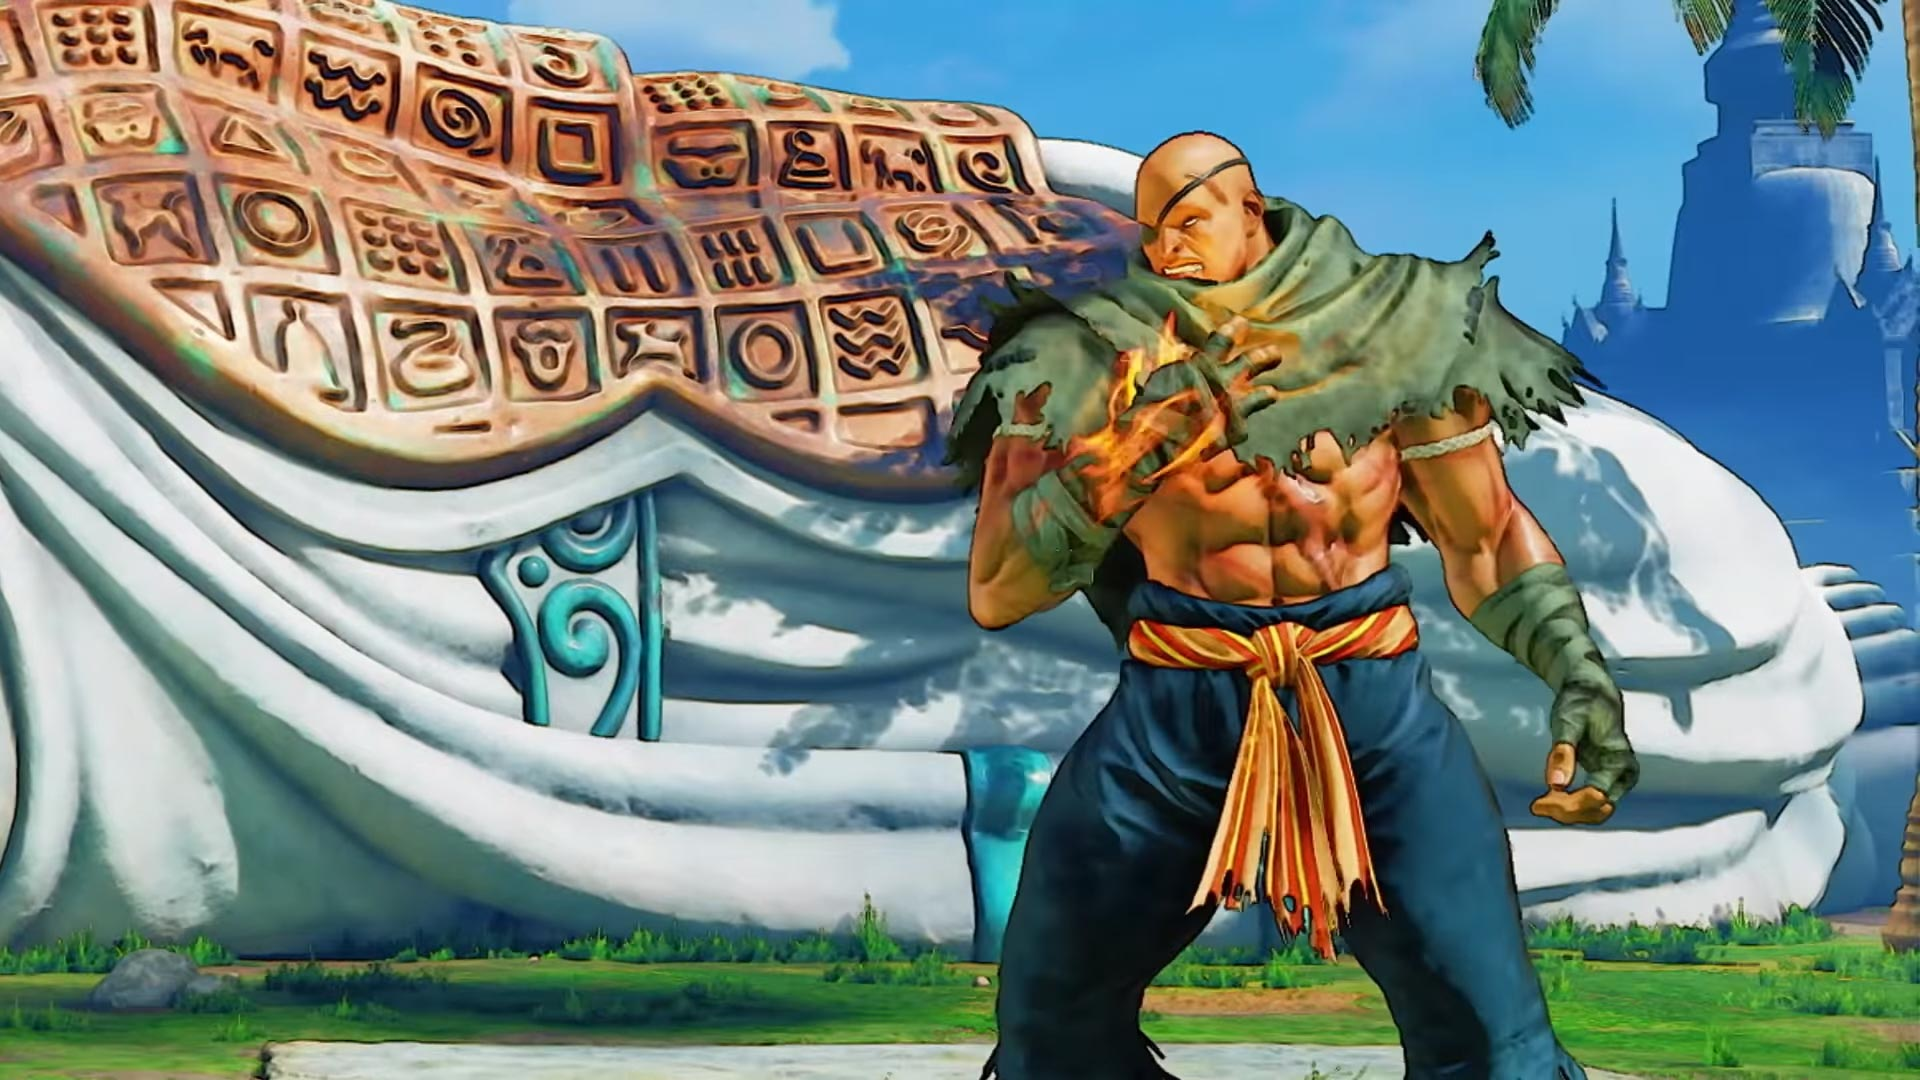 G and Sagat Street Fighter 5: Arcade Edition 9 out of 15 image gallery